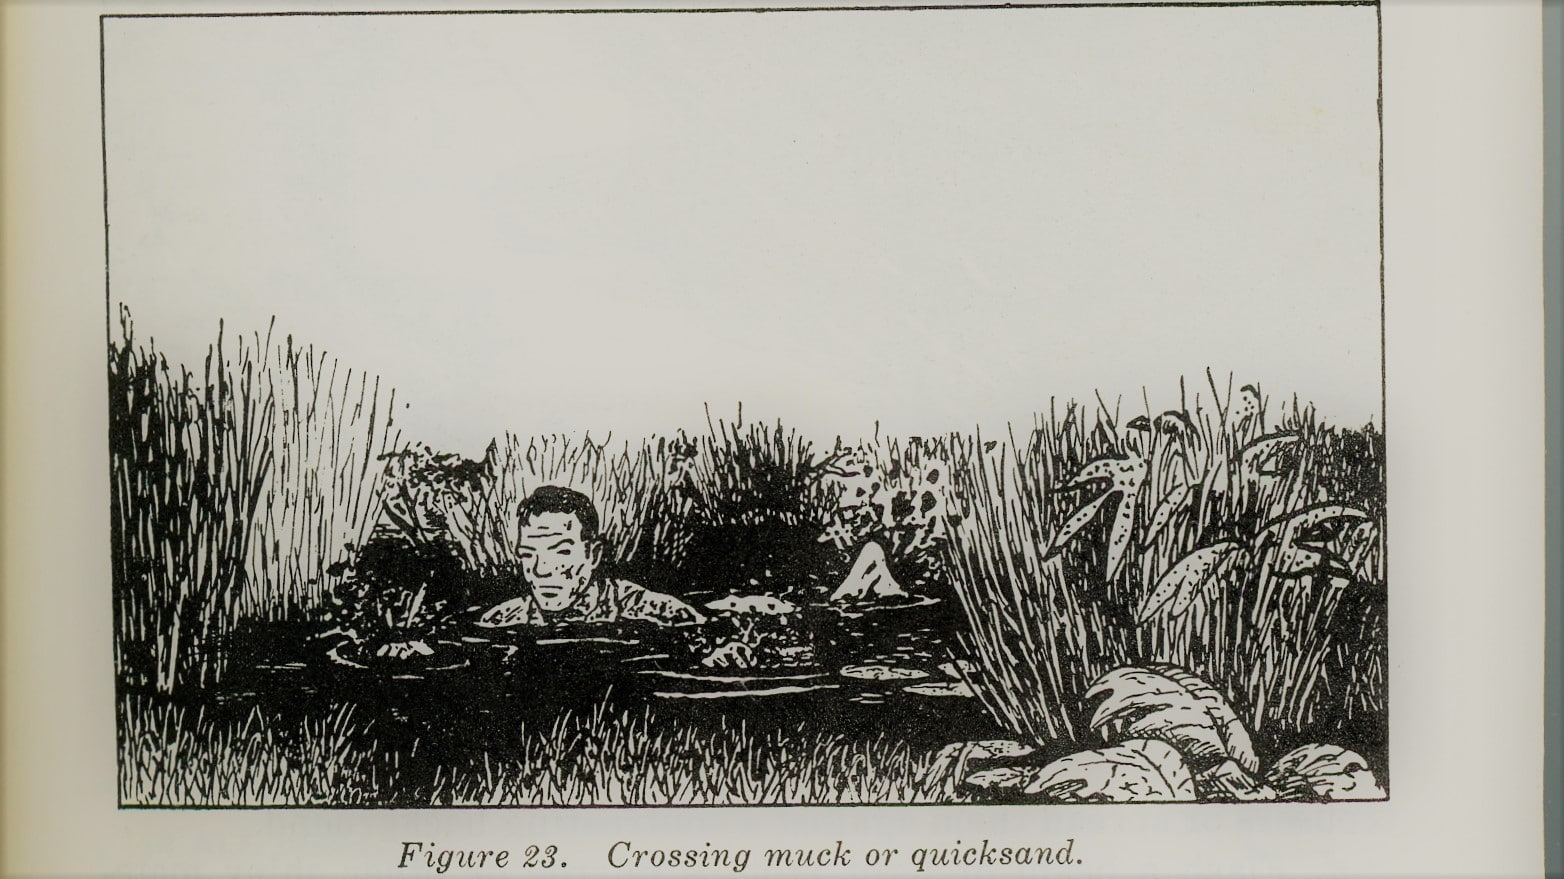 vintage survival illustration crossing wading through quicksand